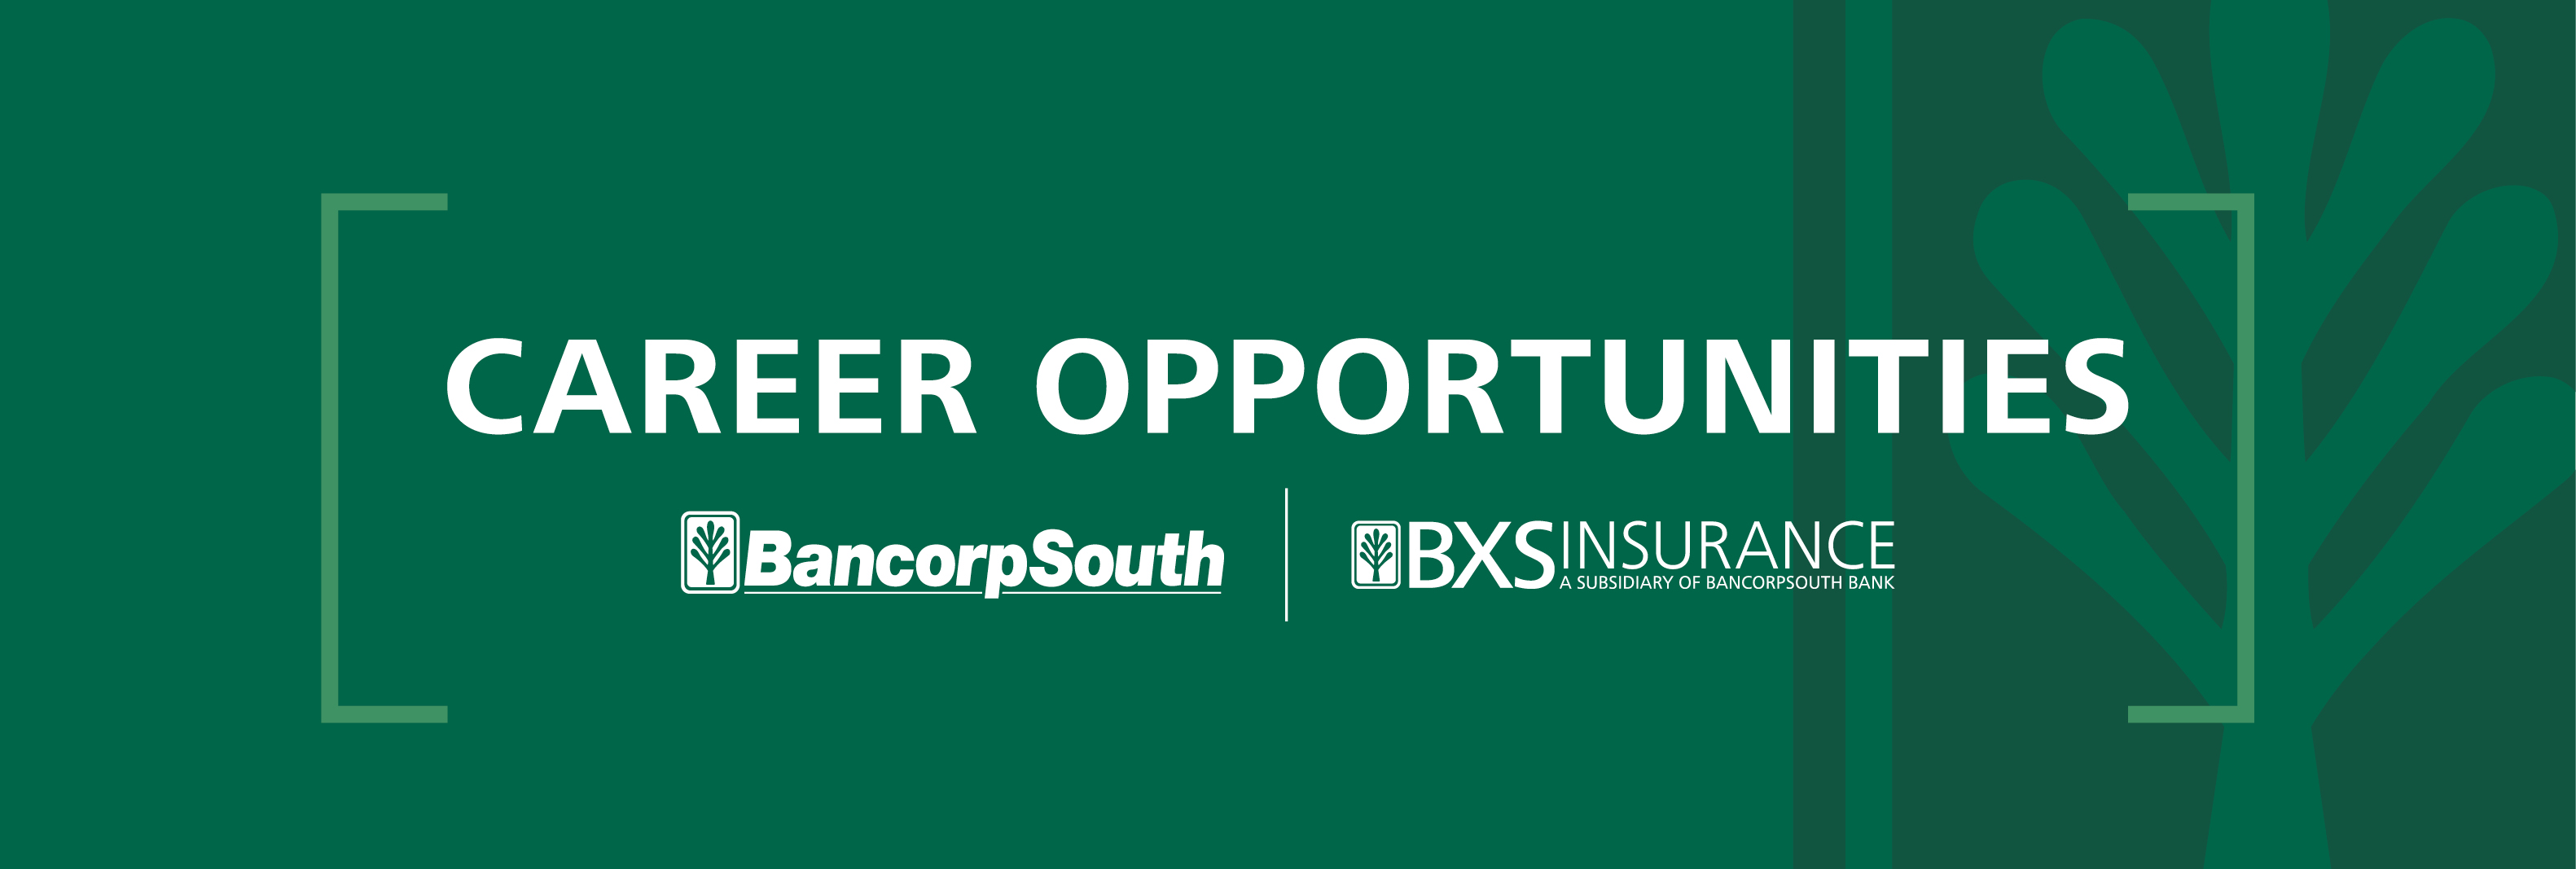 BXS Career Center. Apply today to become part of the BancorpSouth team.